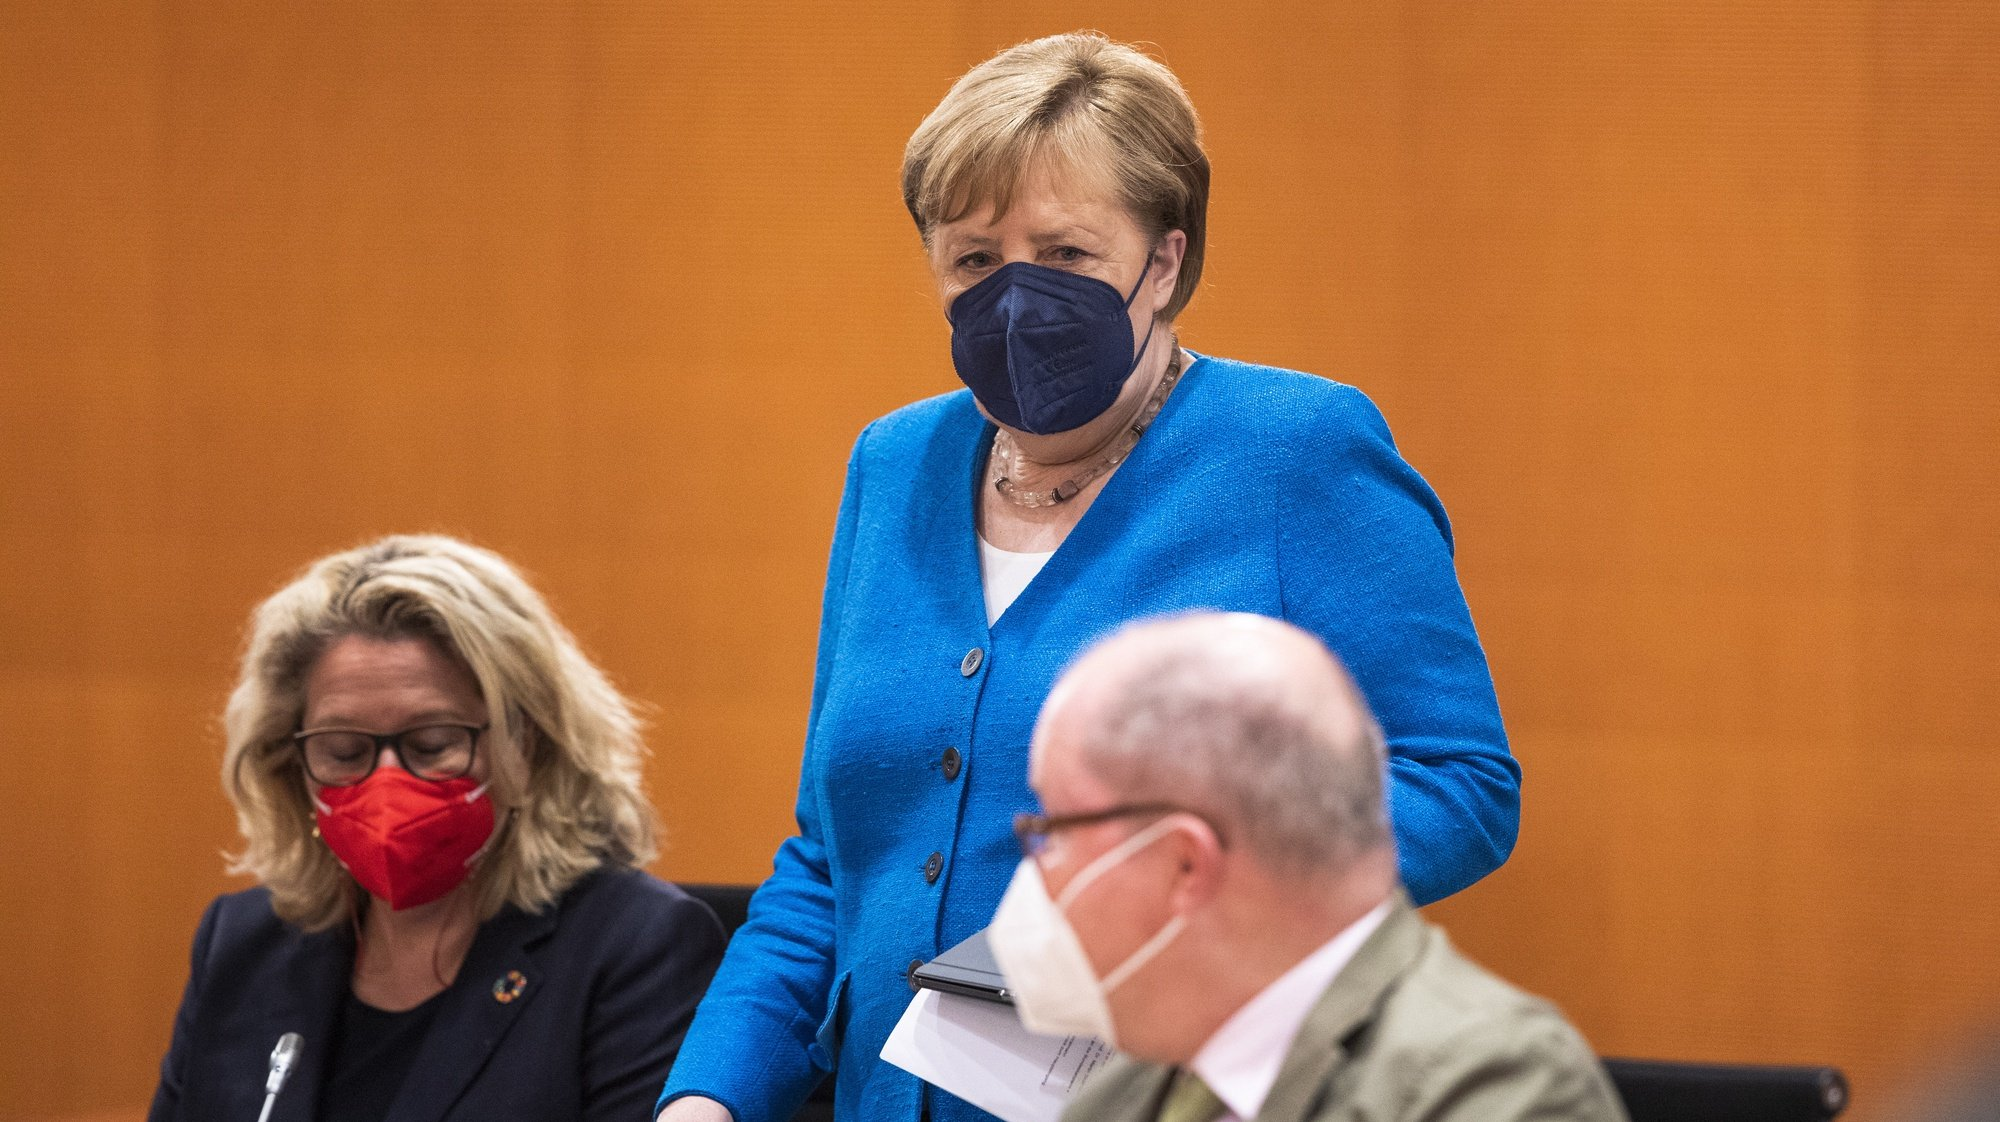 epa09312712 German Chancellor Angela Merkel (C) arrives for the weekly government cabinet meeting in Berlin, Germany, 30 June 2021. Germany has eliminated many of its pandemic lockdown measures as coronavirus disease (COVID-19) infection rates have plummeted nationwide to single digits and over 50 percent of the population has received a first dose of a vaccine. However authorities are becoming increasingly concerned over a possible fourth wave brought on by the spread of the Delta variant.  EPA/MAJA HITIJ / POOL